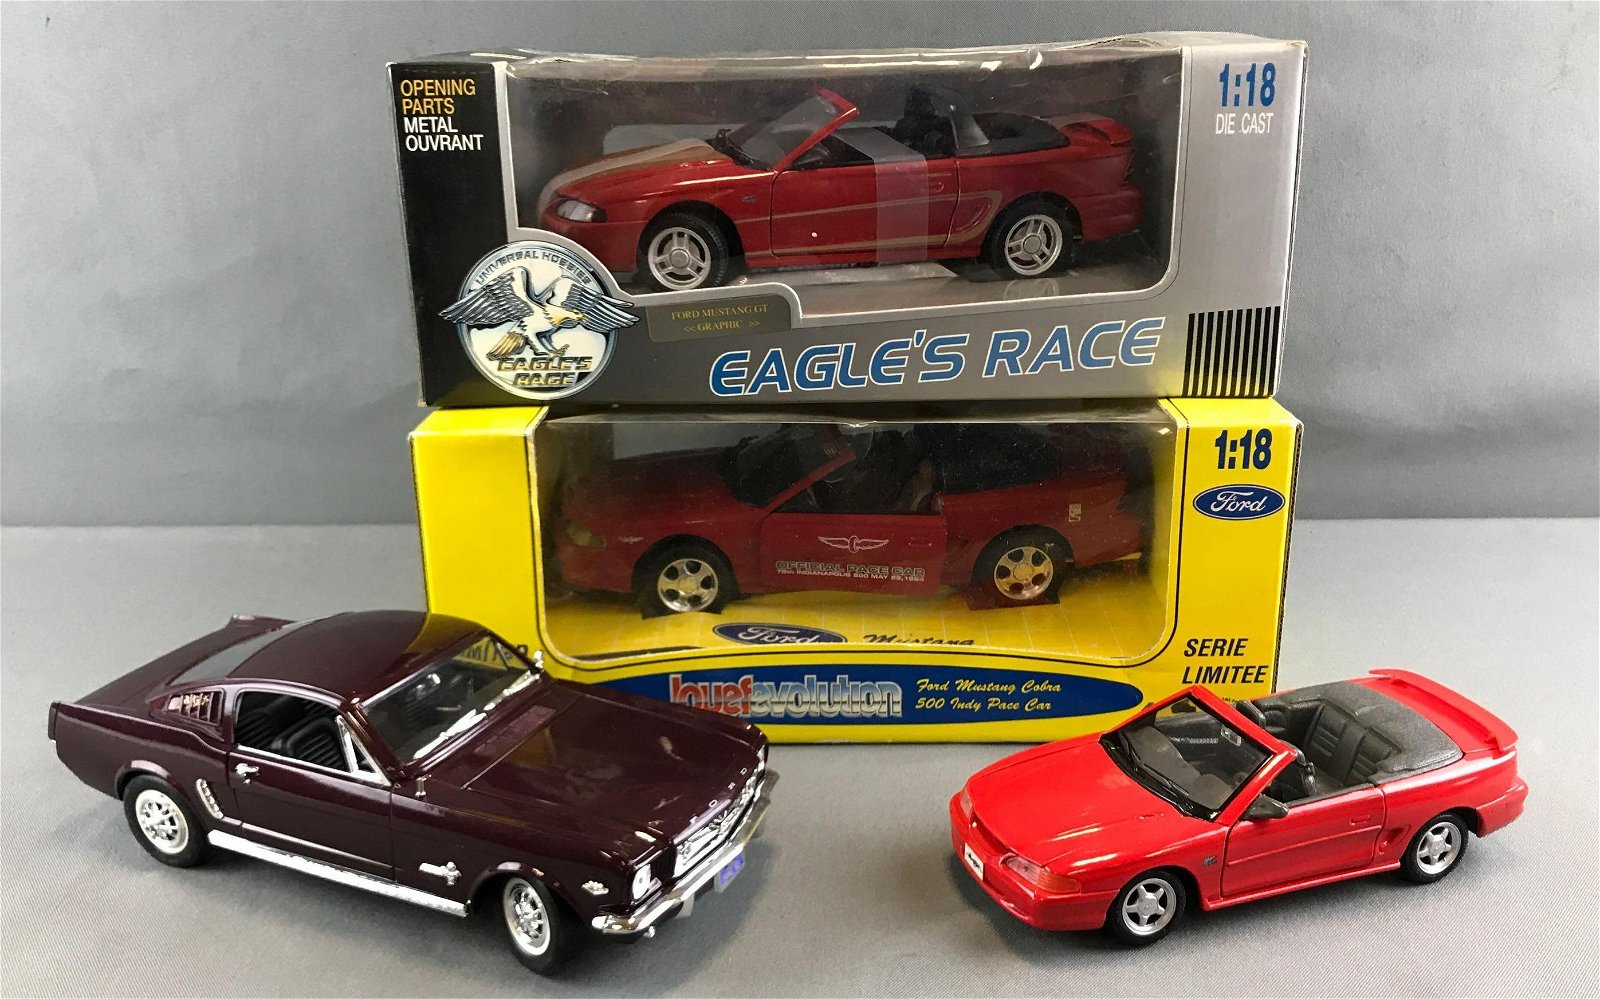 Group of 4 die cast scale model Mustangs